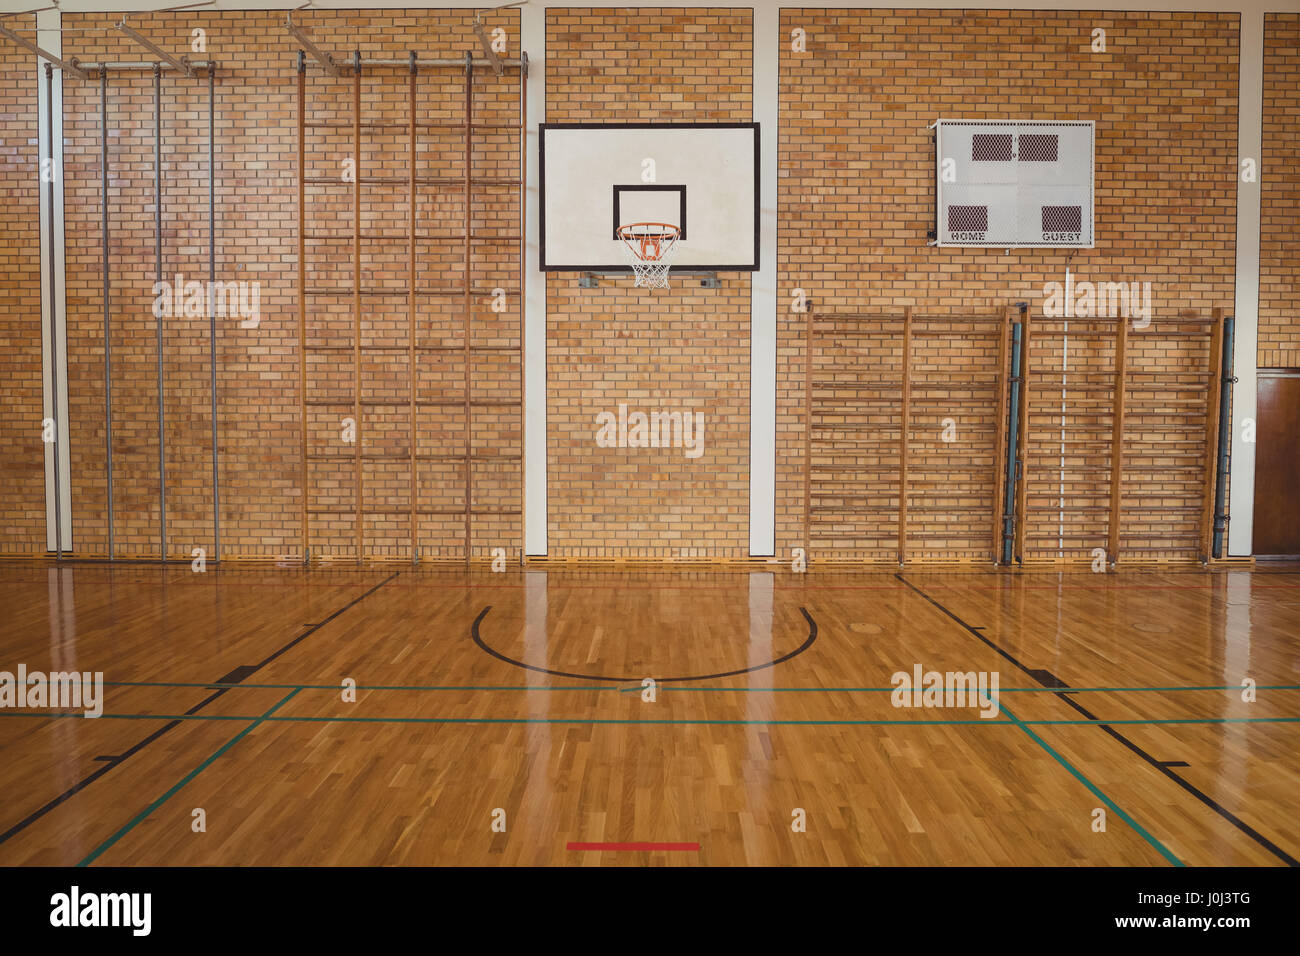 Empty basketball court in high school Stock Photo Royalty